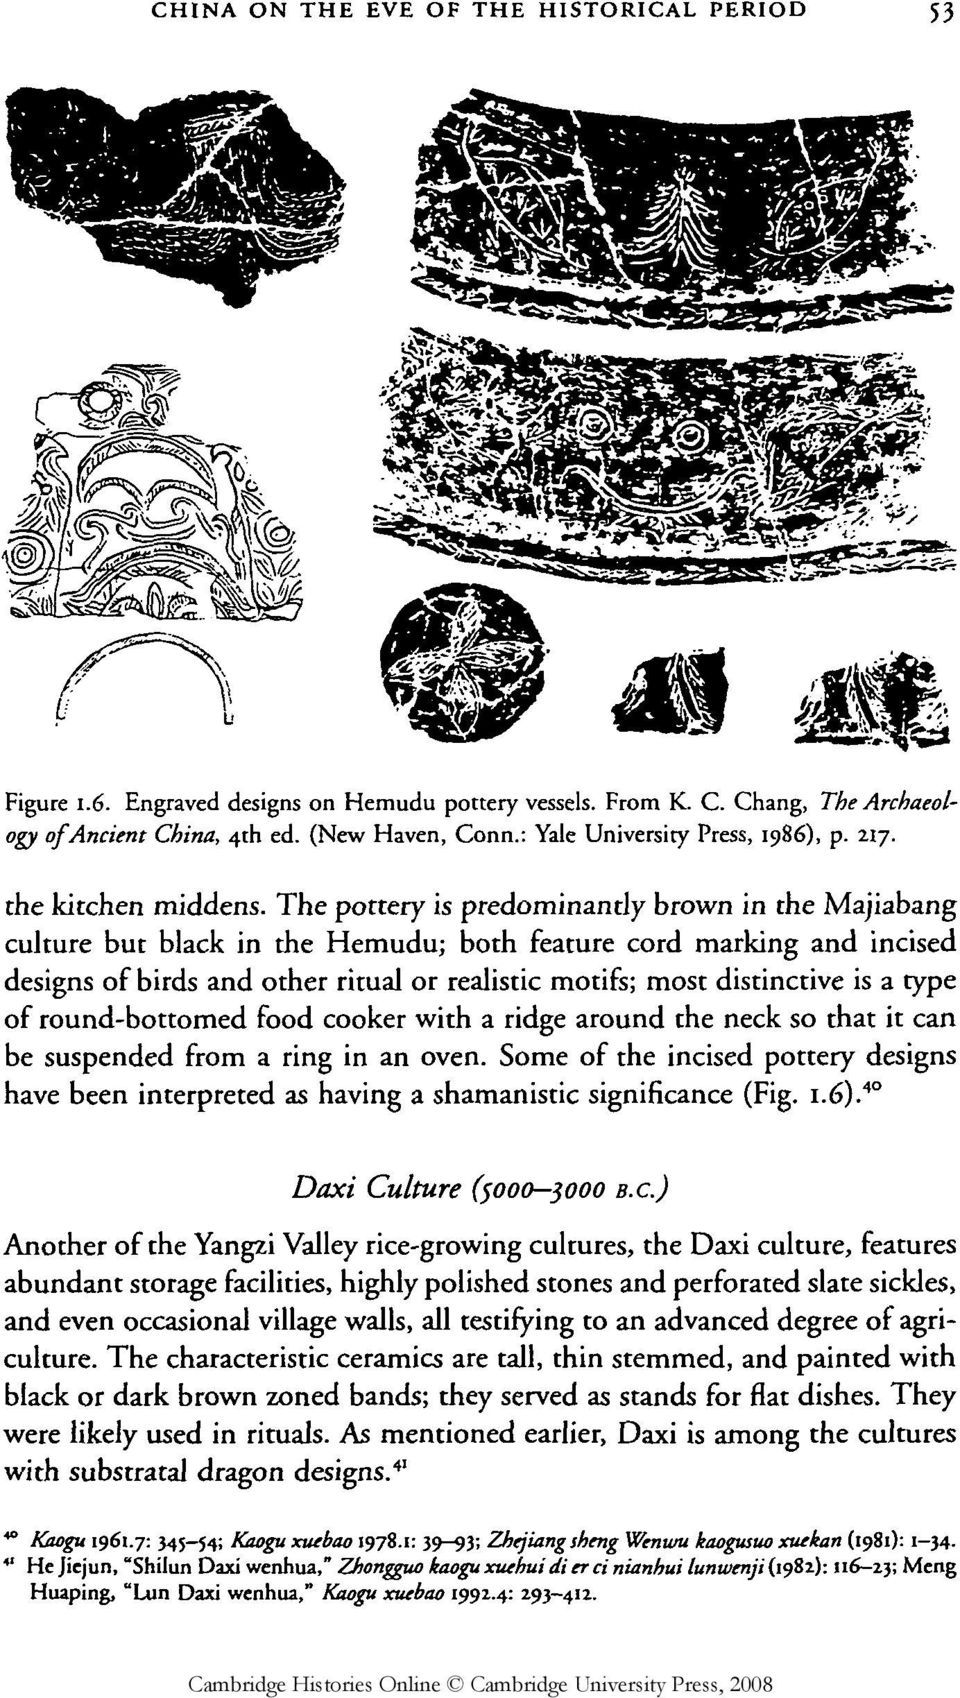 The pottery is predominantly brown in the Majiabang culture but black in the Hemudu; both feature cord marking and incised designs of birds and other ritual or realistic motifs; most distinctive is a